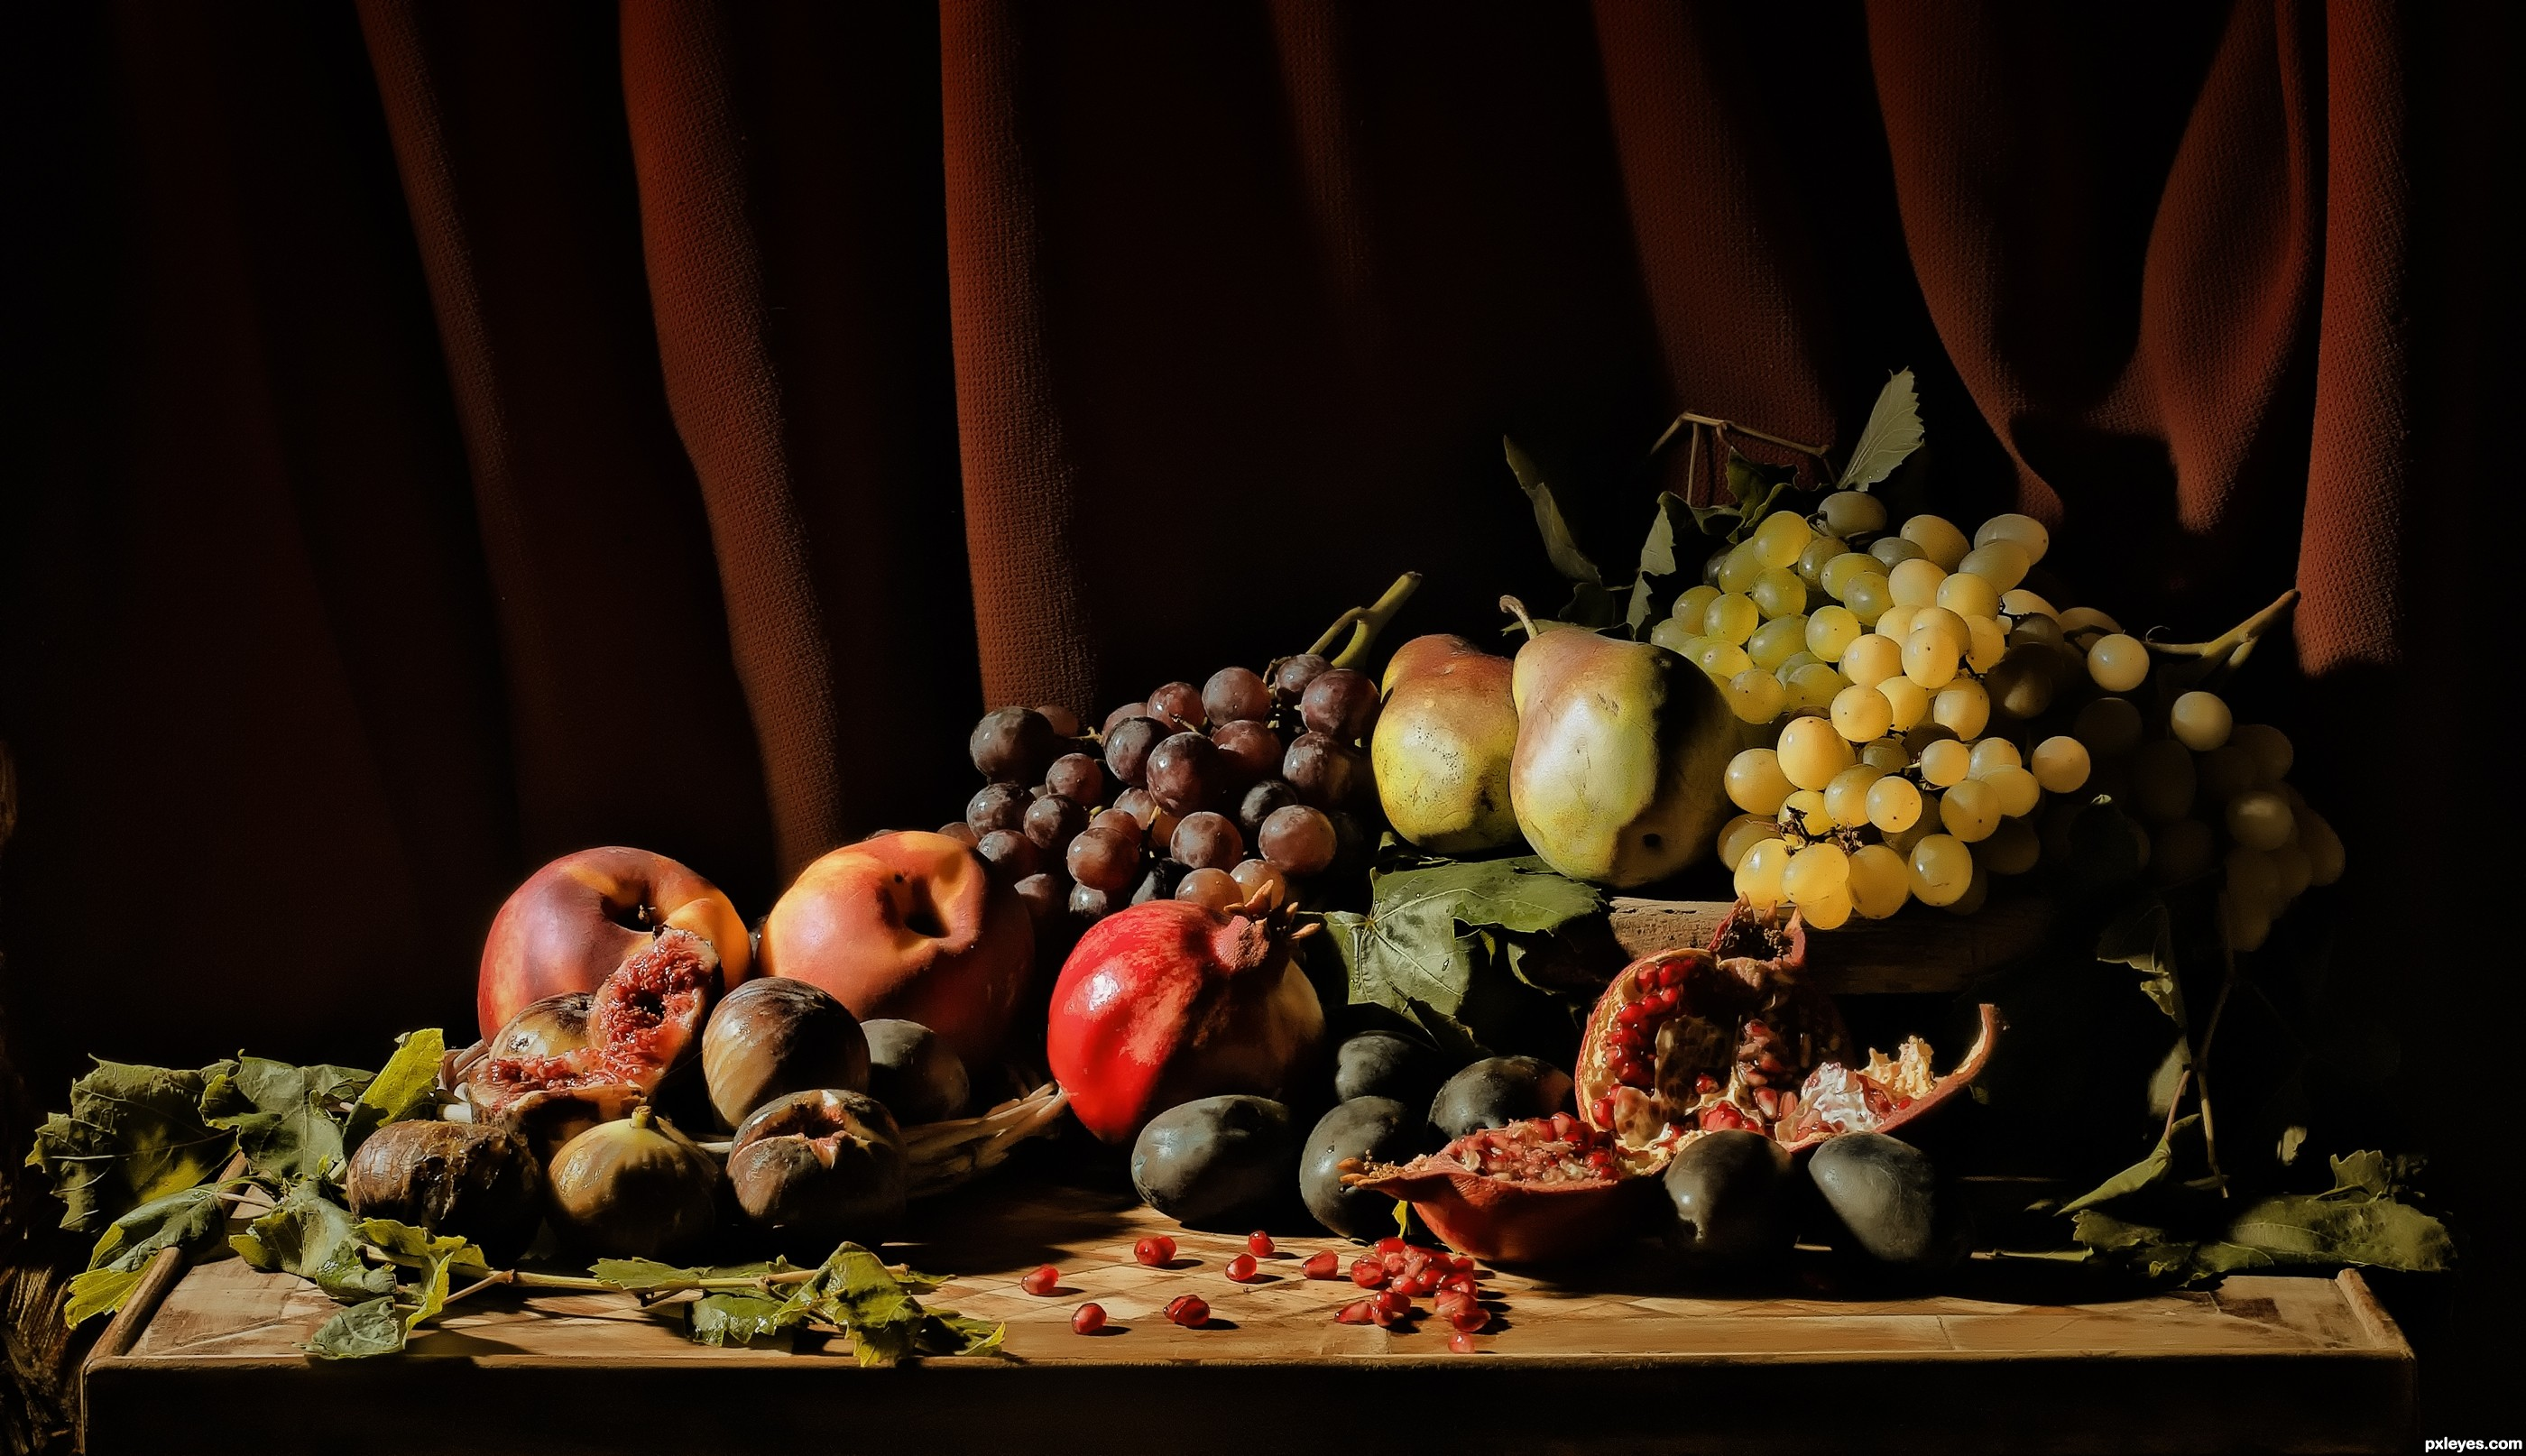 Stilllife paintings often adorn the interior of ancient Egyptian tombs It was believed that food objects and other items depicted there would in the afterlife